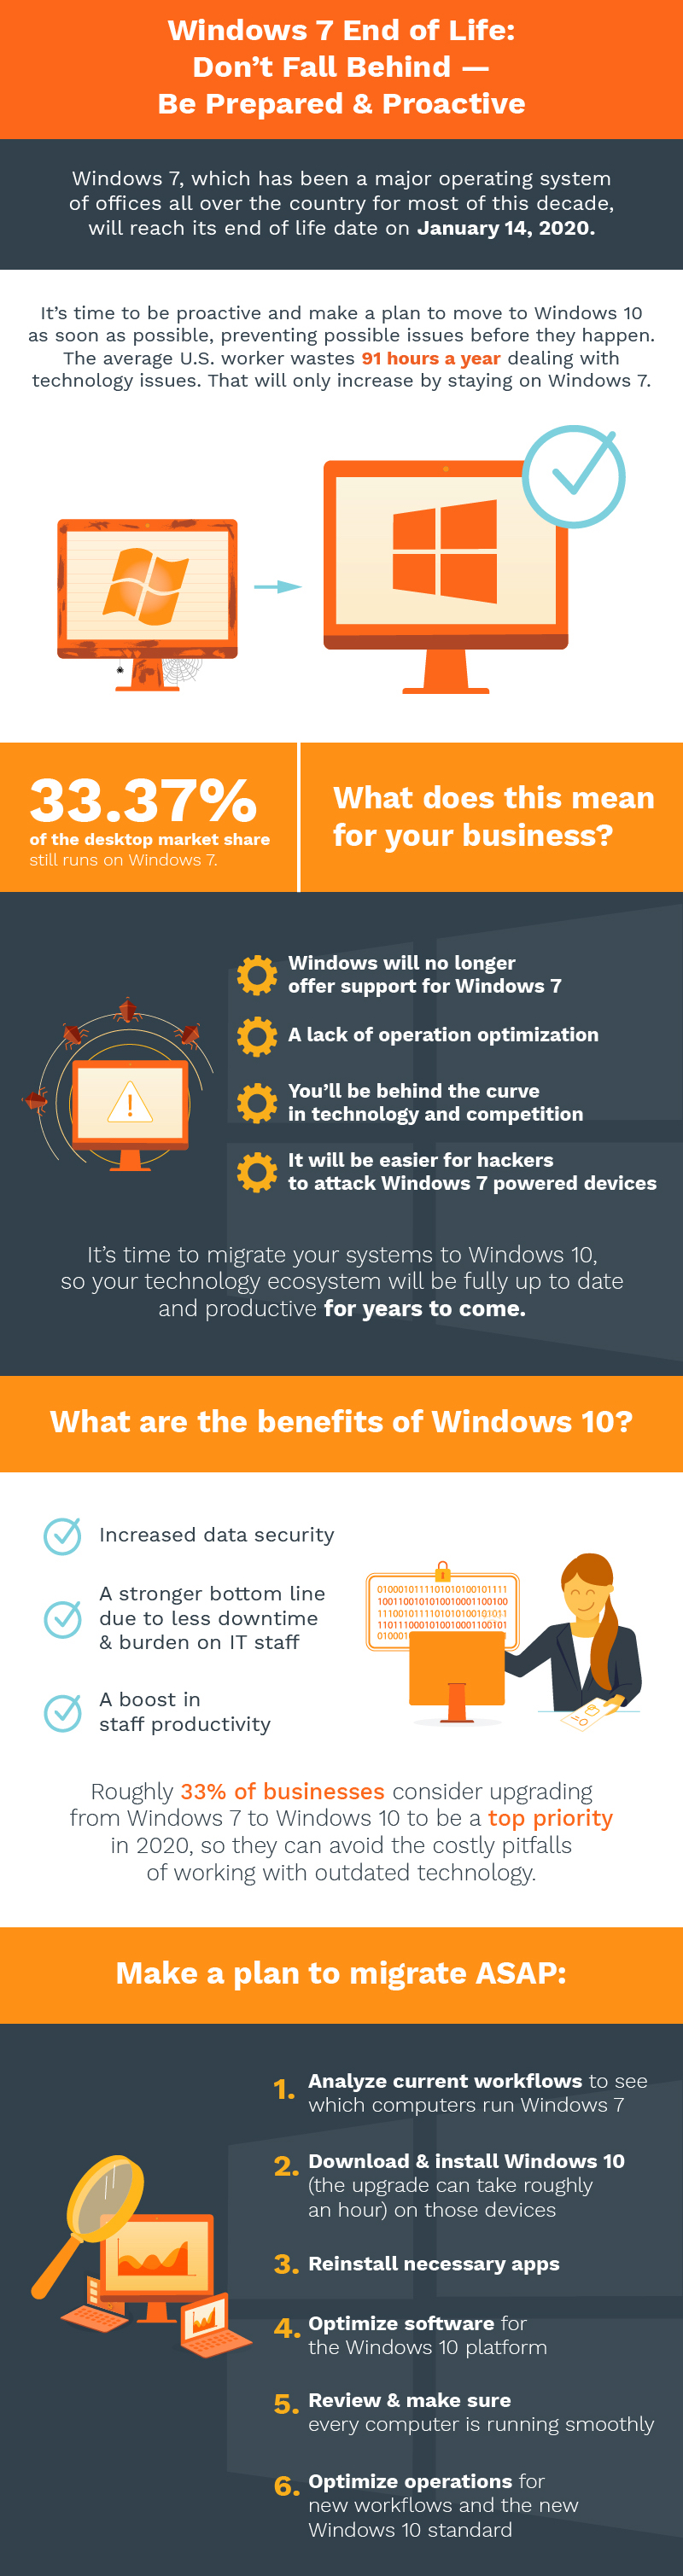 Office1 Windows 7 End of Life Infographic Revised02